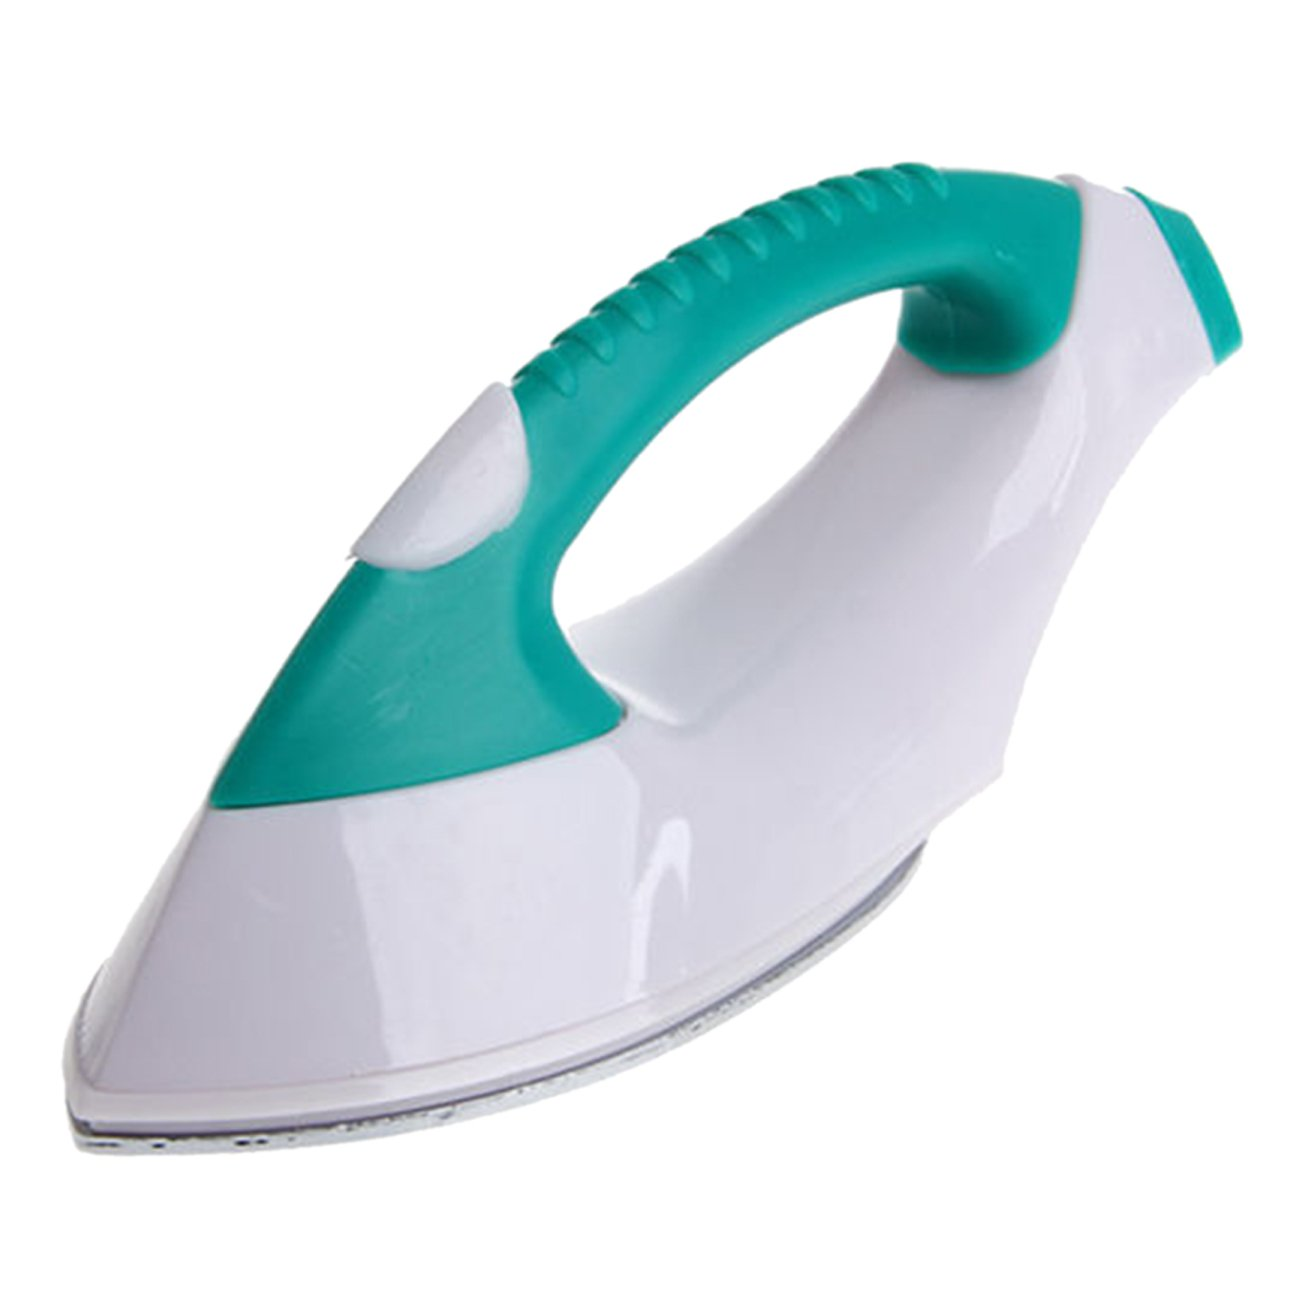 THEE Mini Portable Electric Traveling Steam Iron for Clothes Dry US Plug